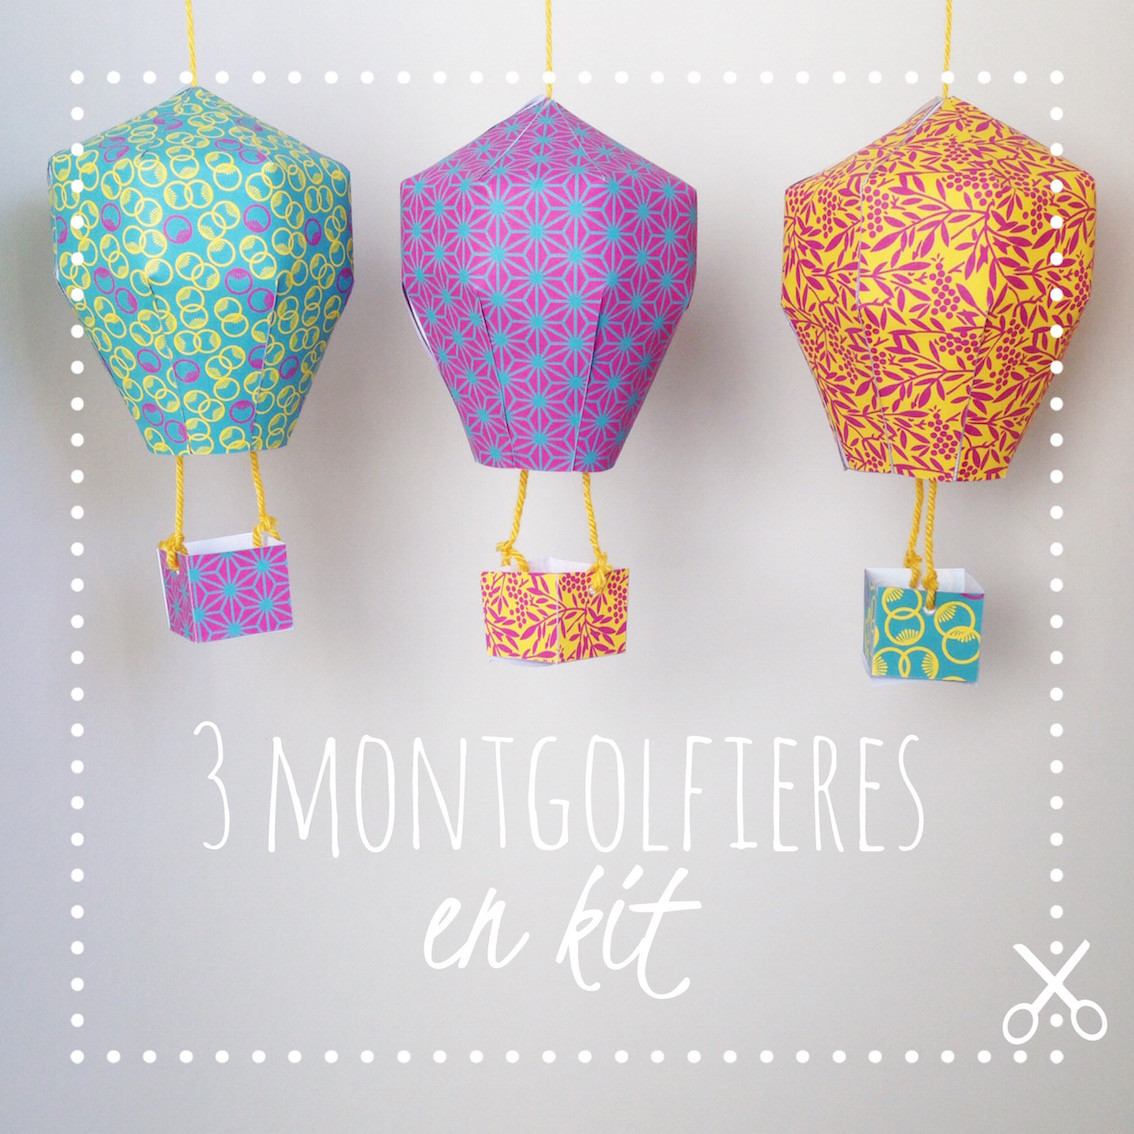 DiY kids – Mobile montgolfières en kit – Japon